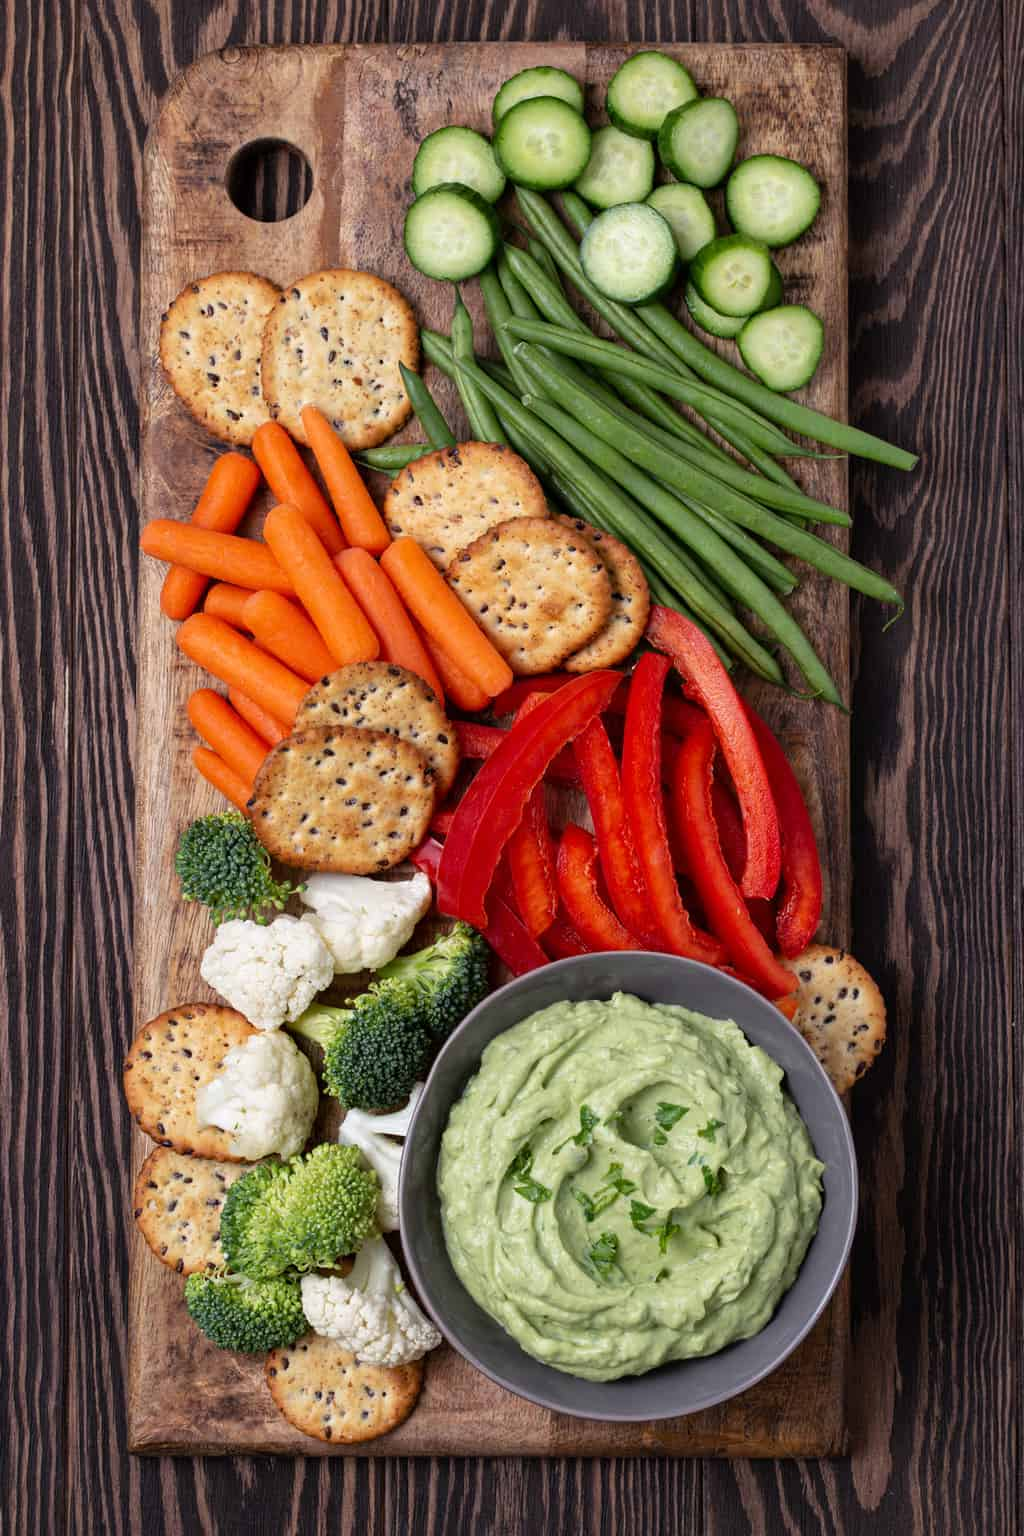 Wooden cutting board filled with vegetables, crackers and a bowl filled with a healthy Avocado Dip that is made with Greek yogurt